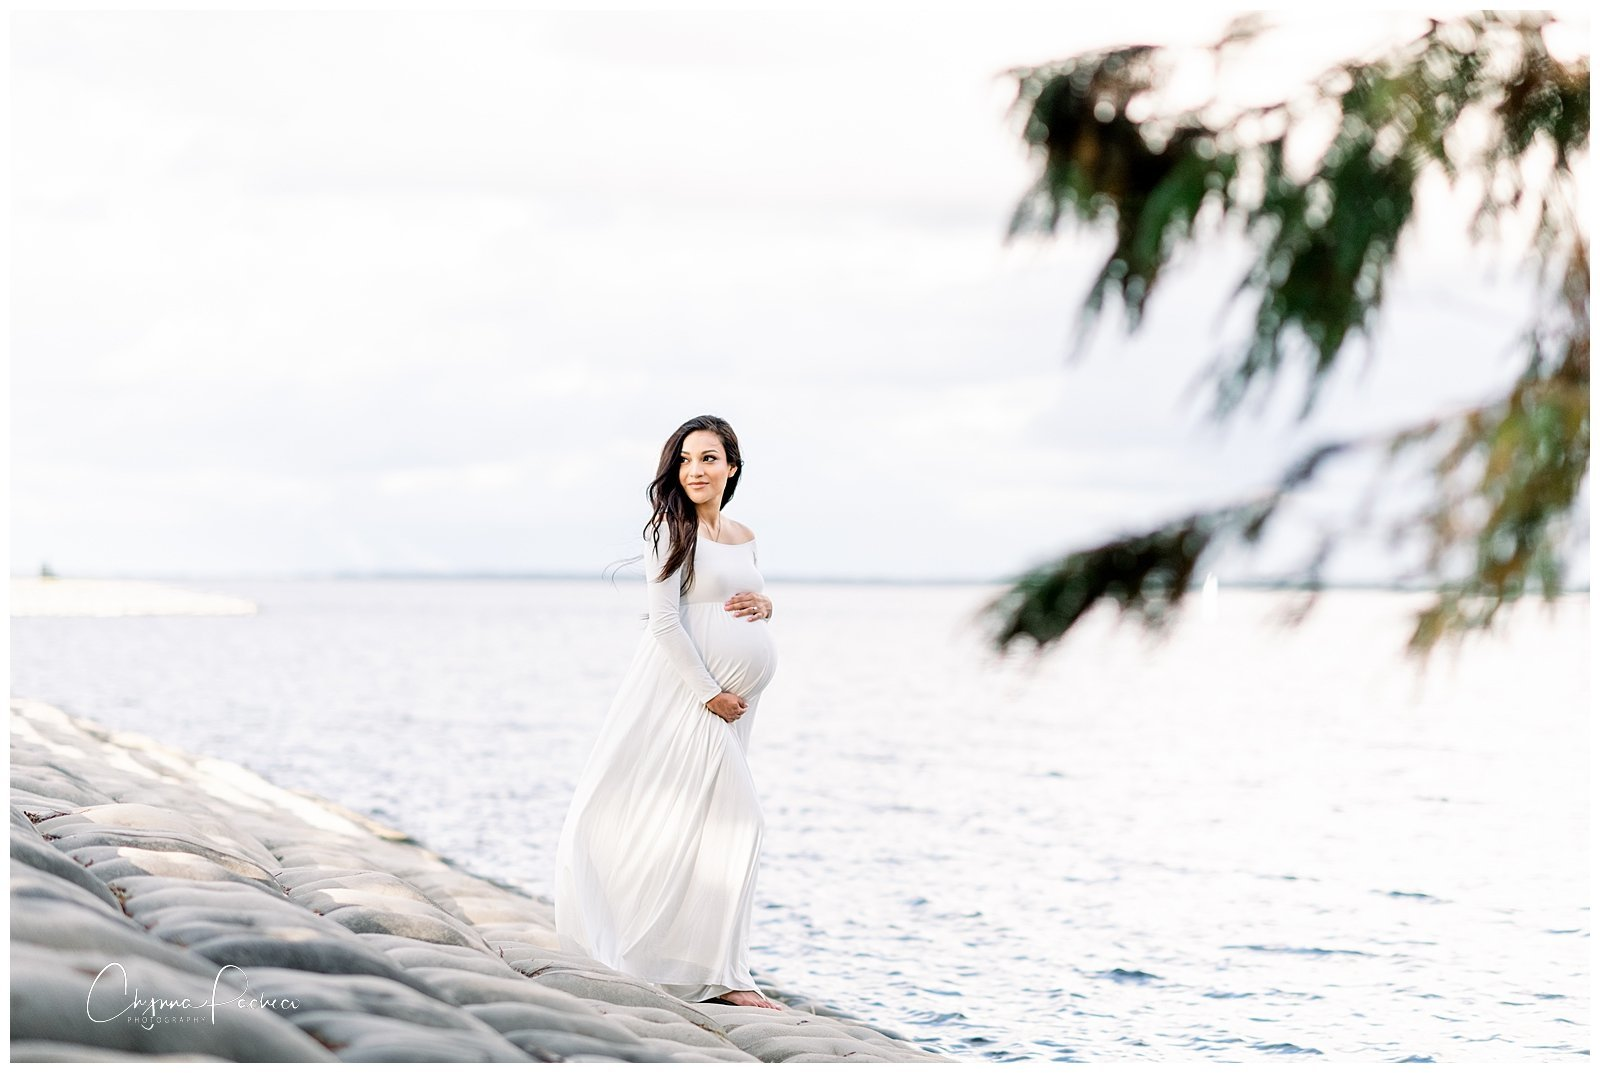 Orlando_Maternity_Photos_1018